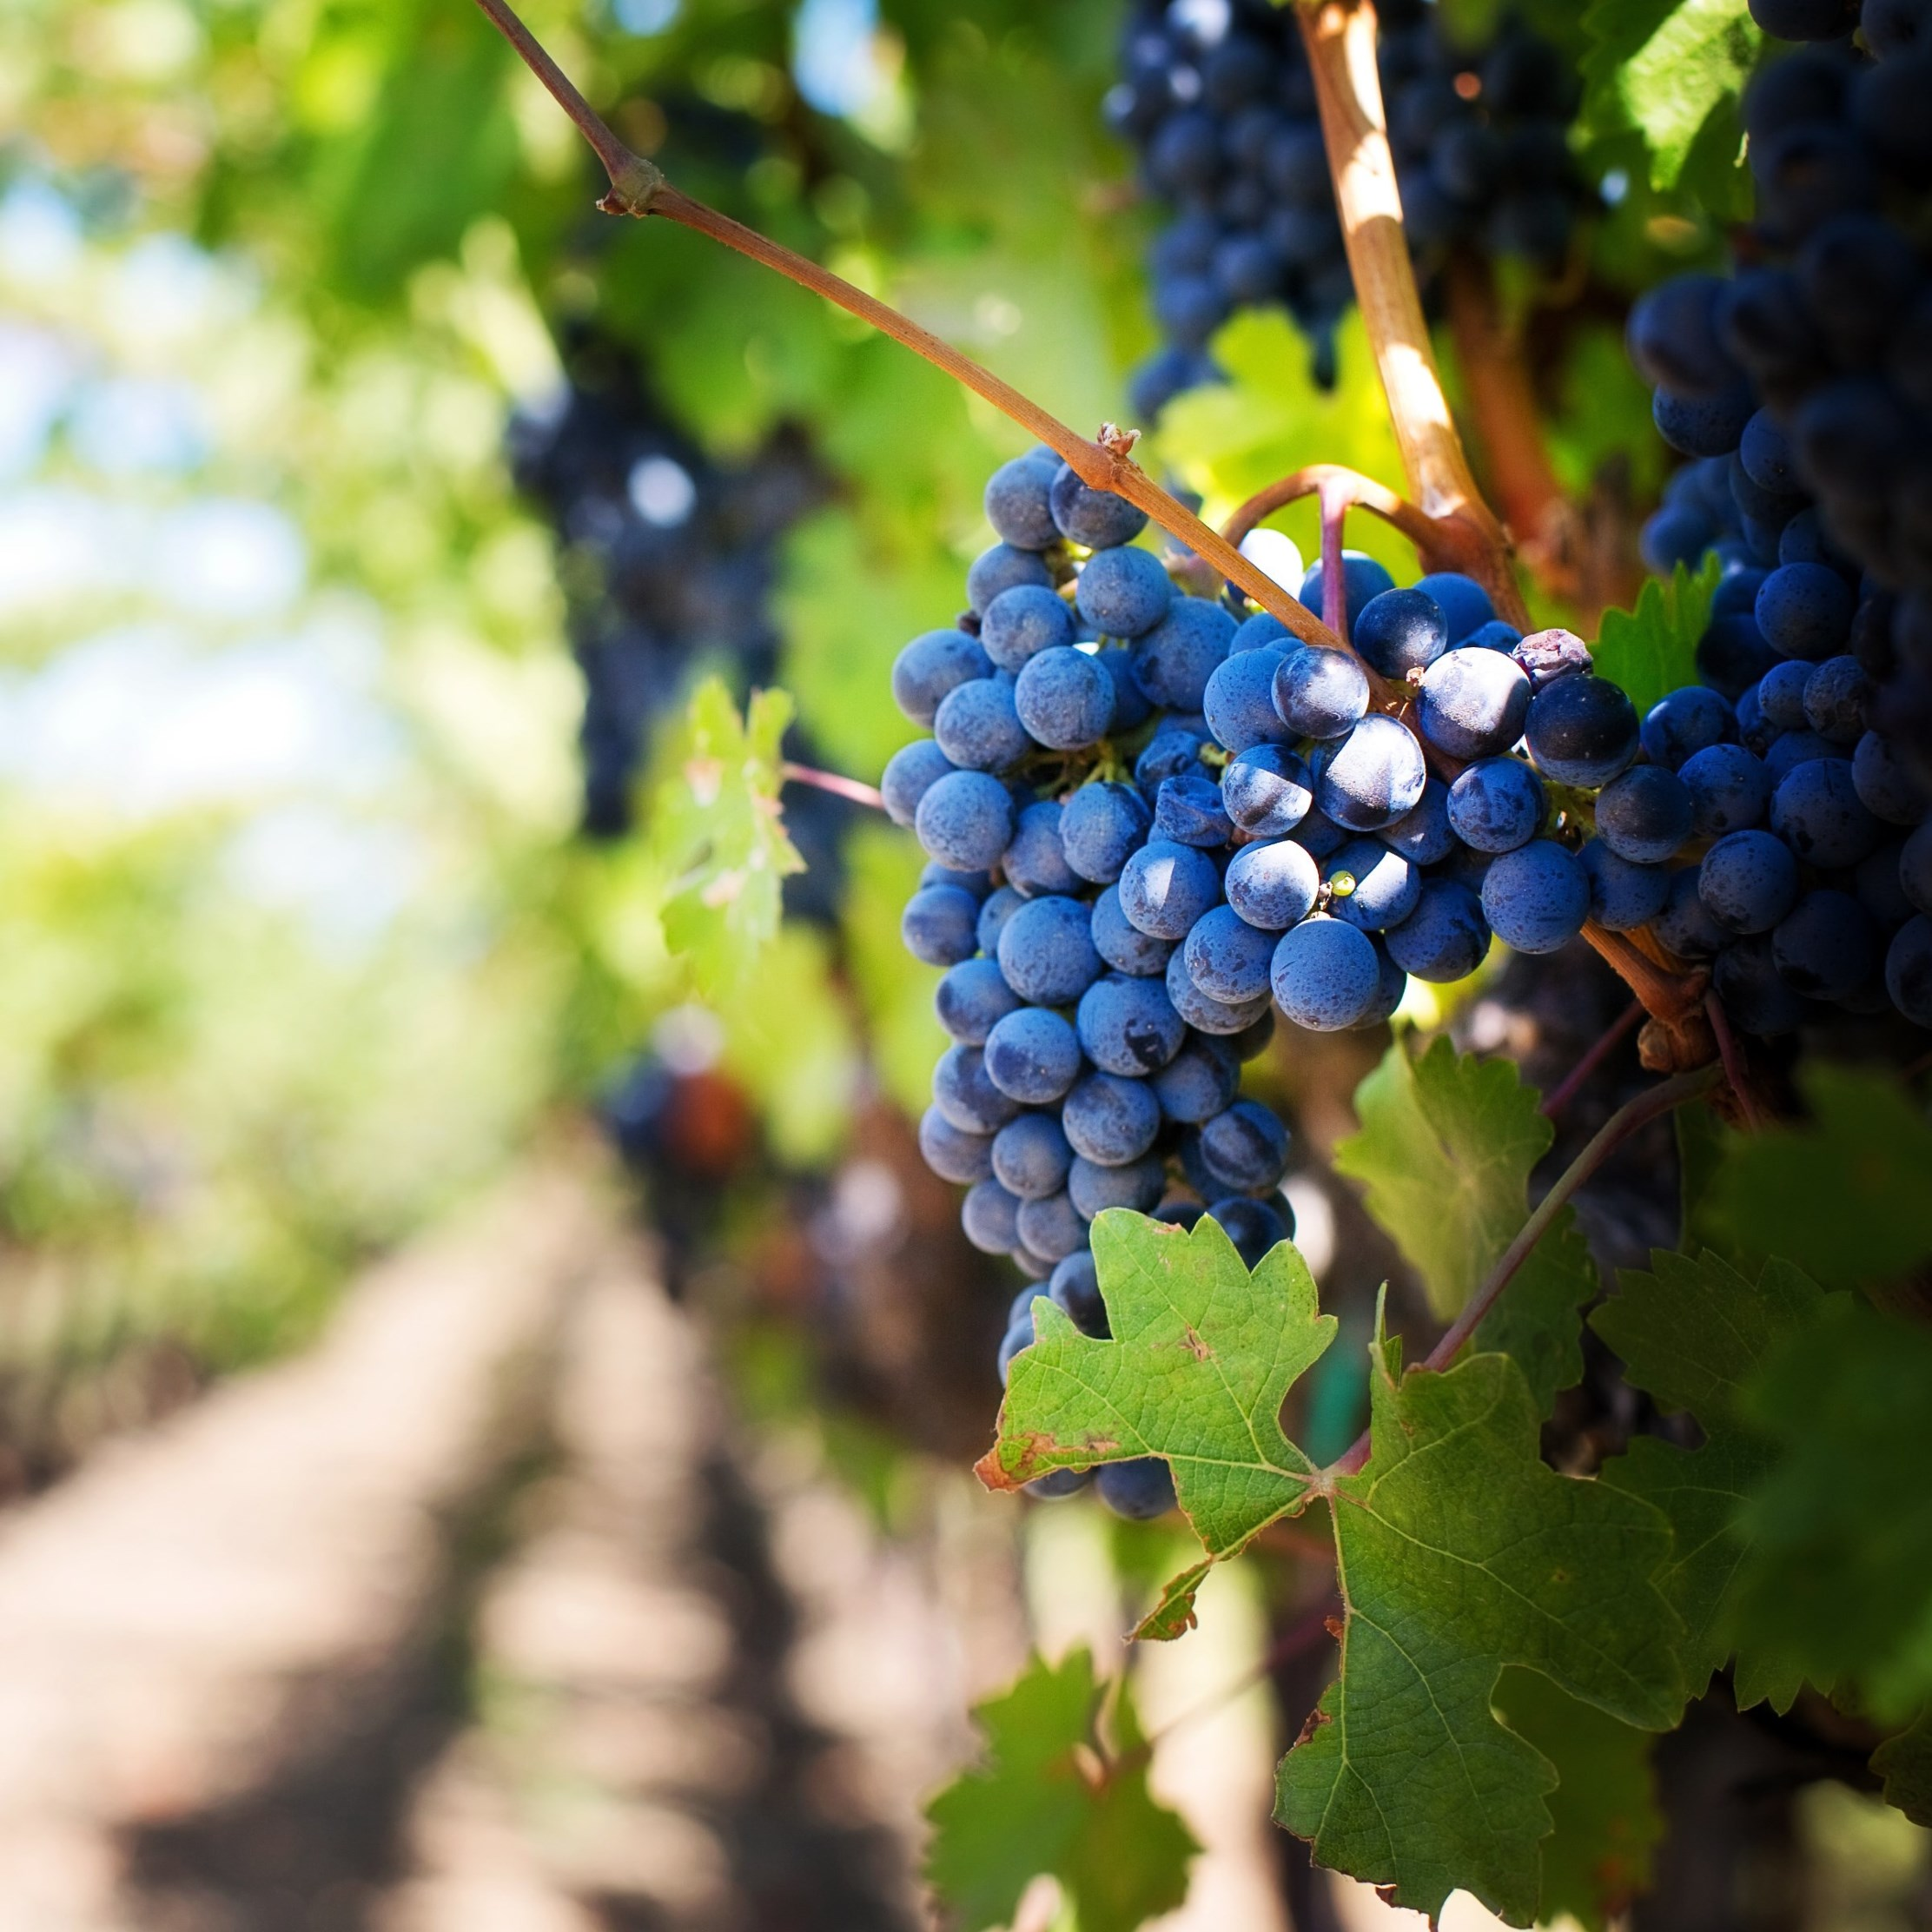 Grapes in vineyard | 2224x2224 wallpaper